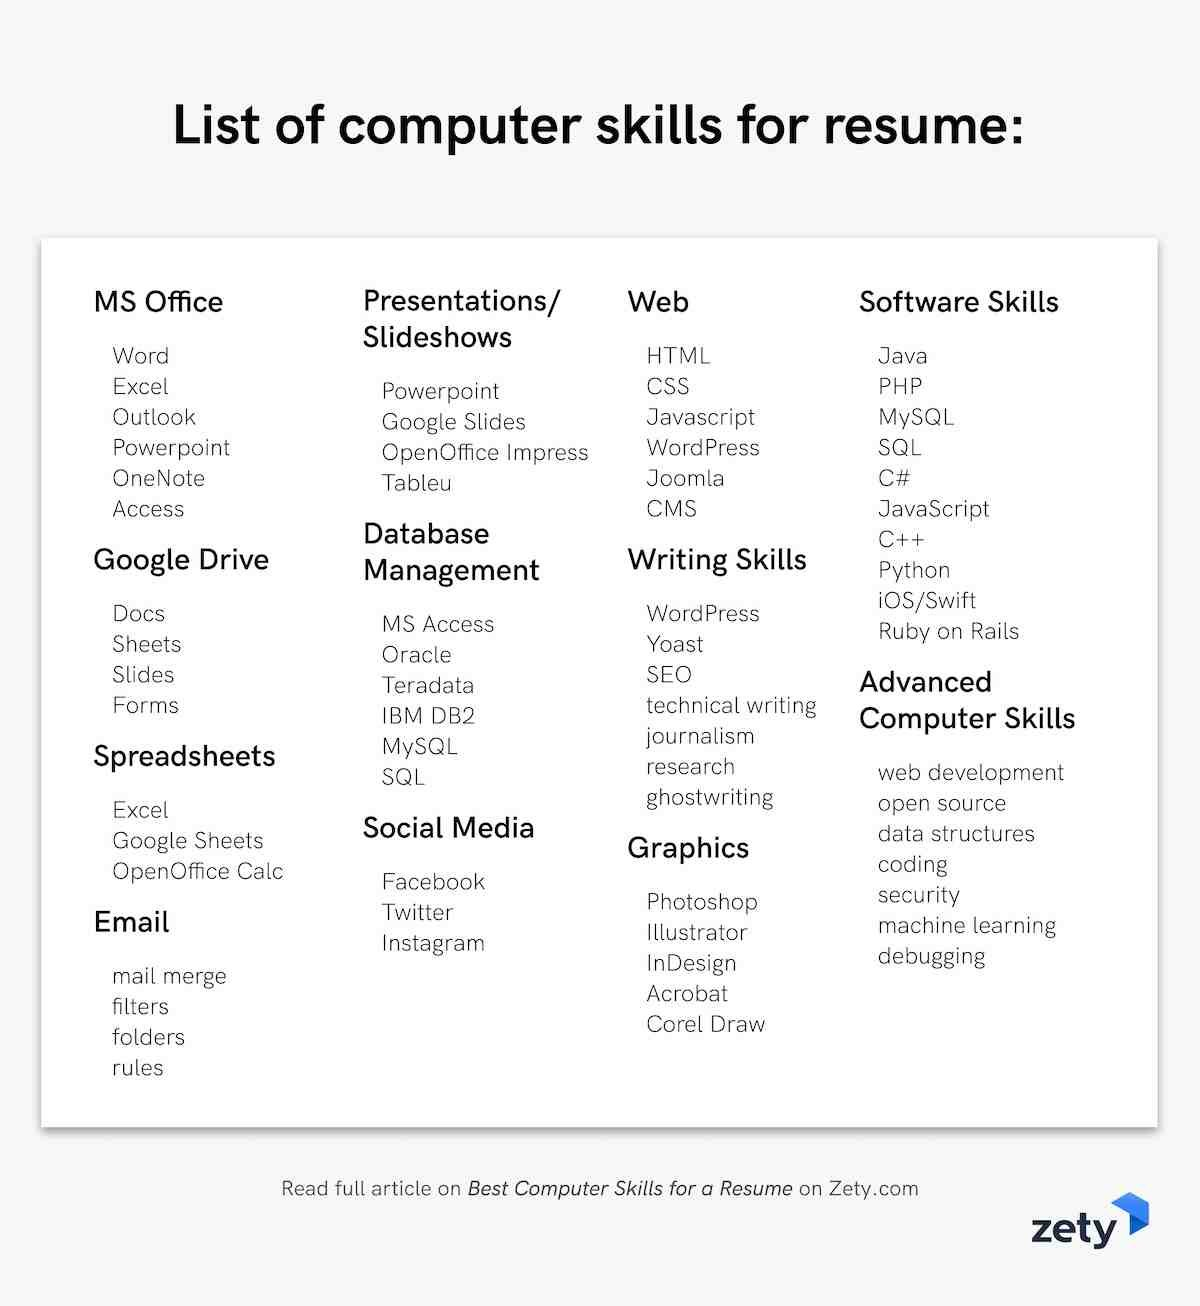 best computer skills for resume software employers common of adp business development Resume Common Computer Skills For Resume